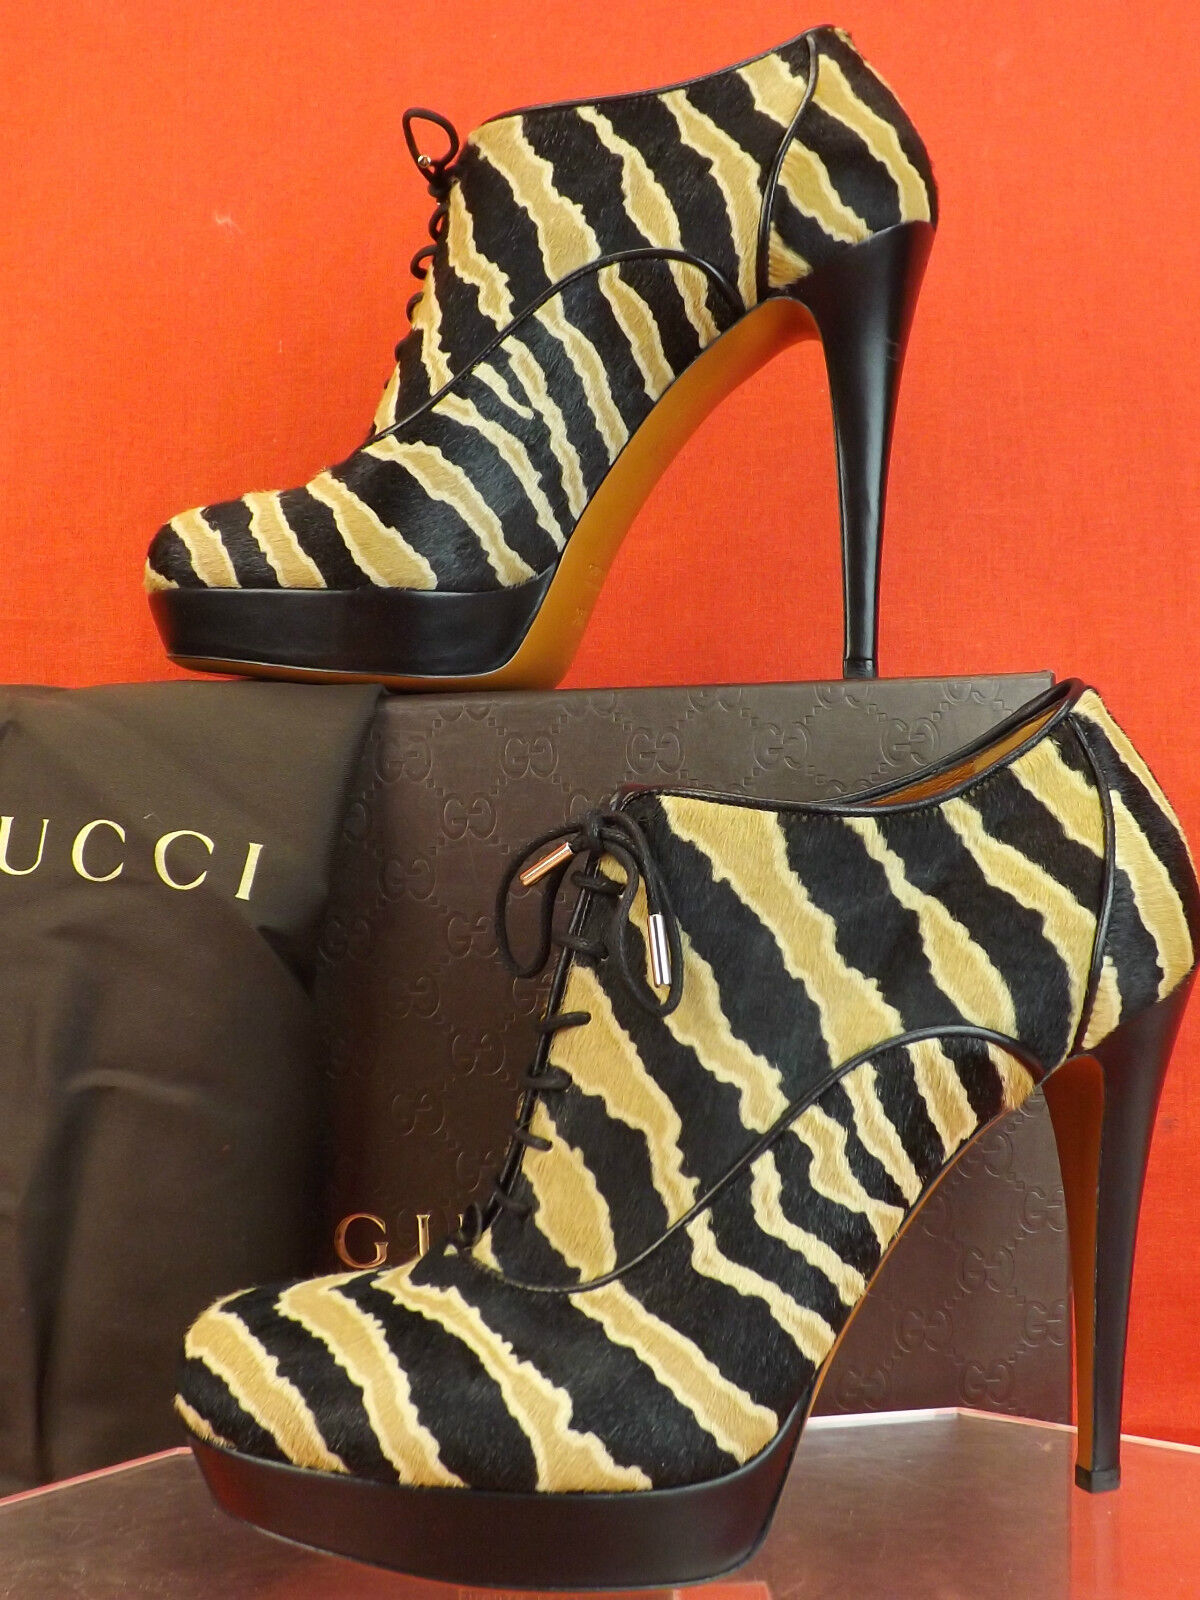 NIB GUCCI BETTY BLACK CARAMEL ZEBRA PRINT HAIR LACE UP PLATFORM ANKLE BOOTS 38.5